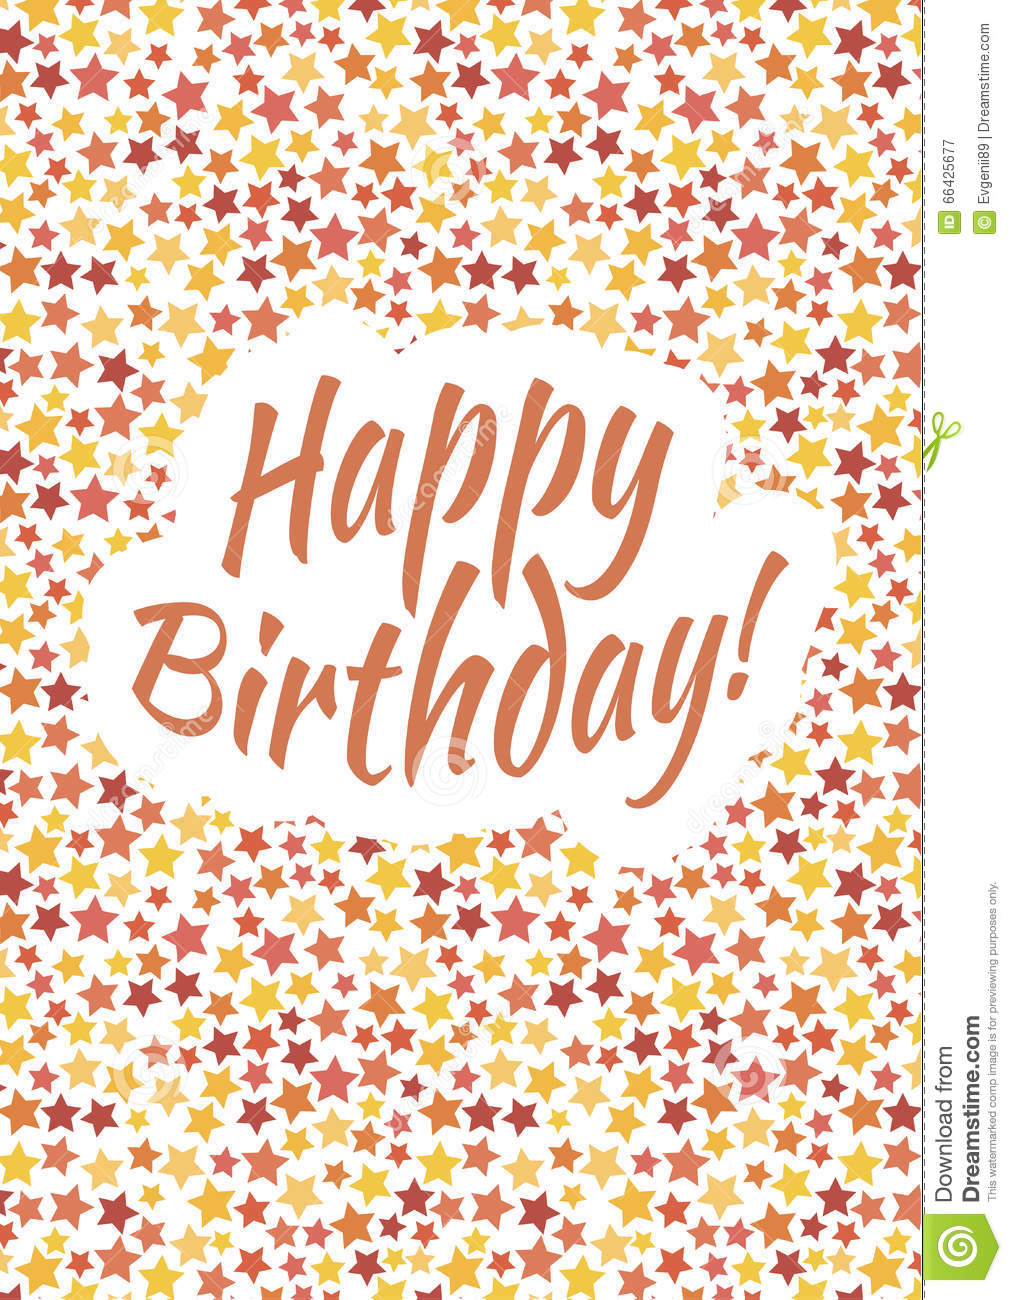 Happy Birthday Card Cover With Red Yellow And Orange Stars Stock